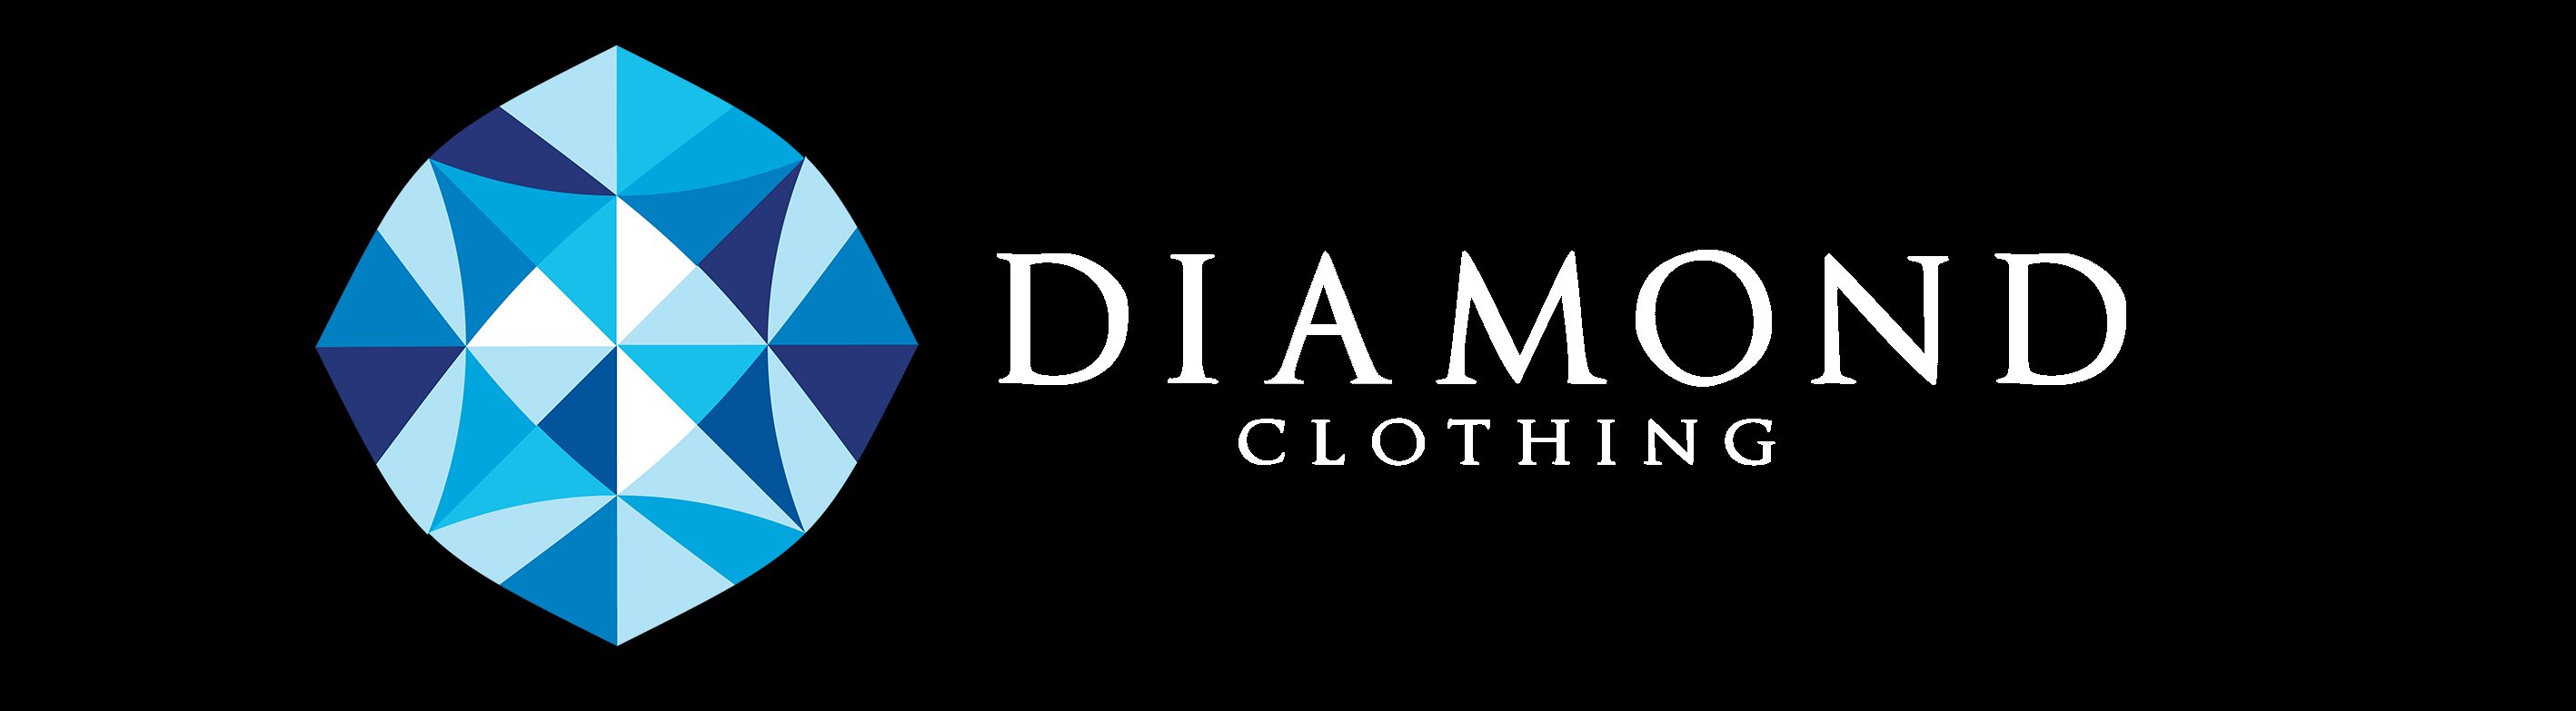 Diamond Clothing | British Clothing Manufacturers